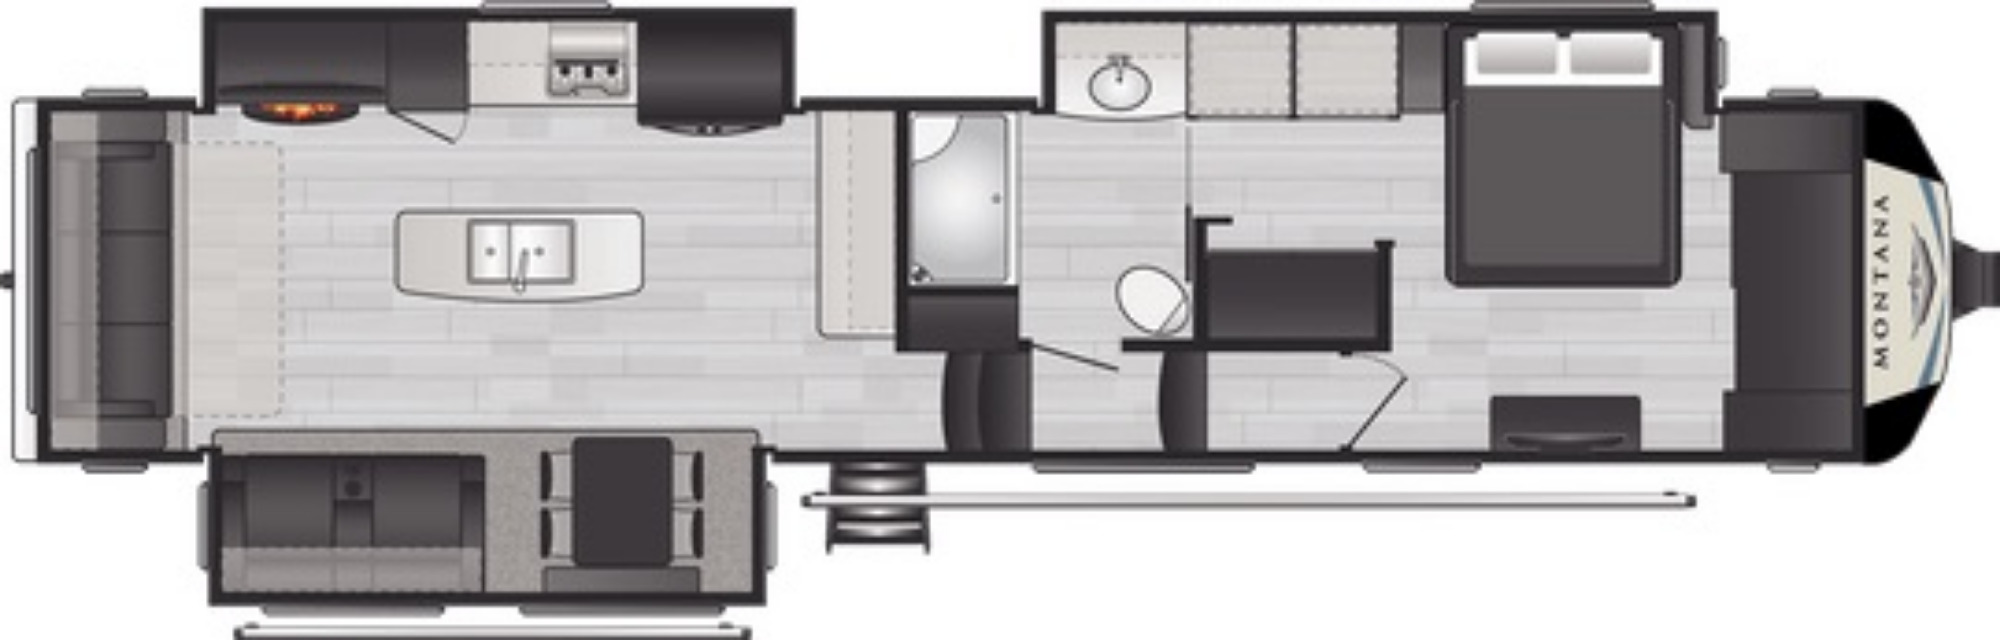 View Floor Plan for 2021 KEYSTONE MONTANA 3813MS